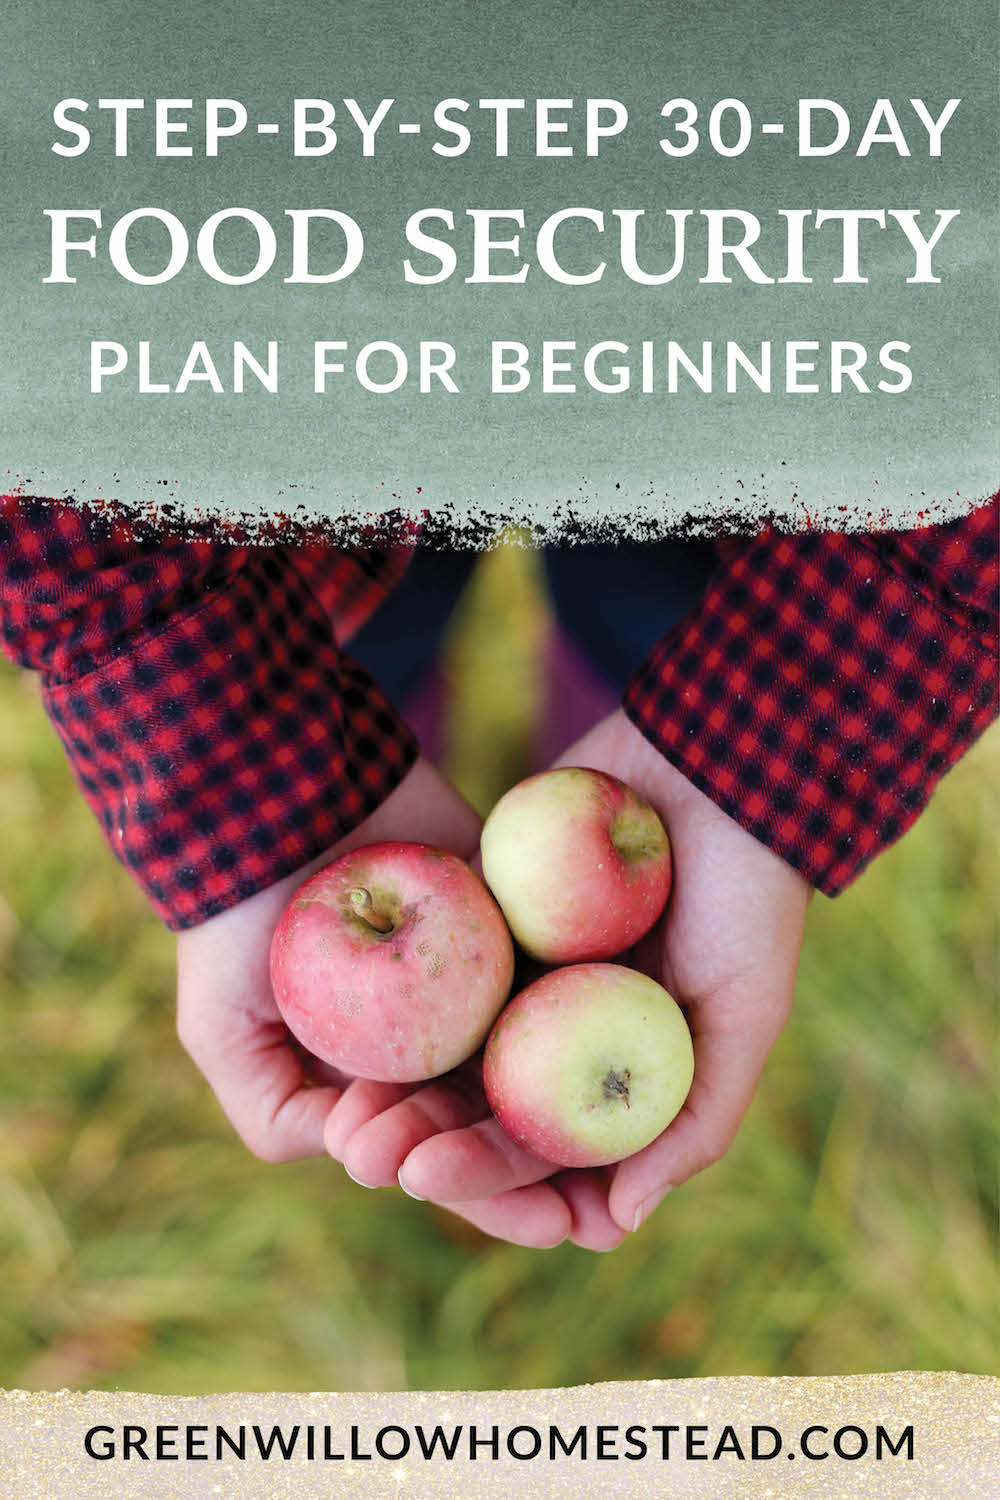 Step by step food security plan for beginners